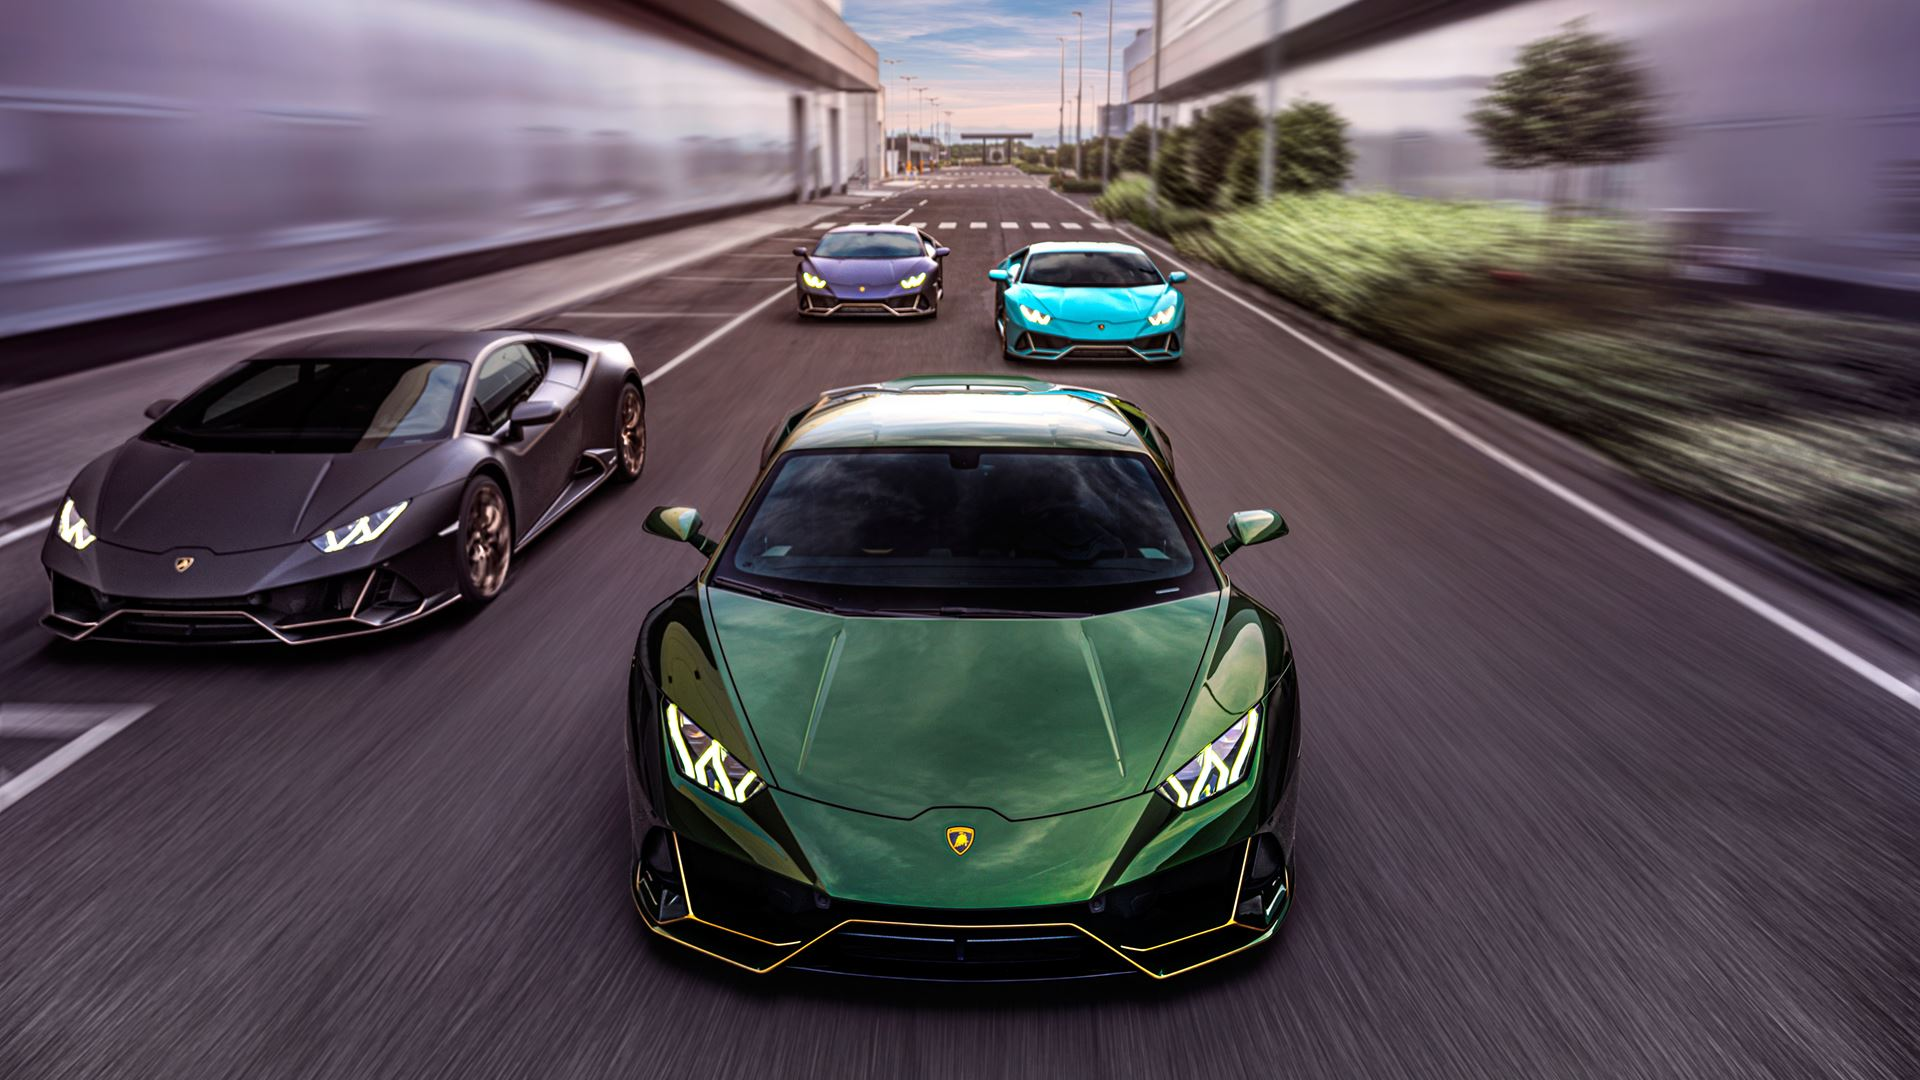 Lamborghini Mexico Commissions Special Edition Models To Commemorate 10 Years in the Region - Image 8